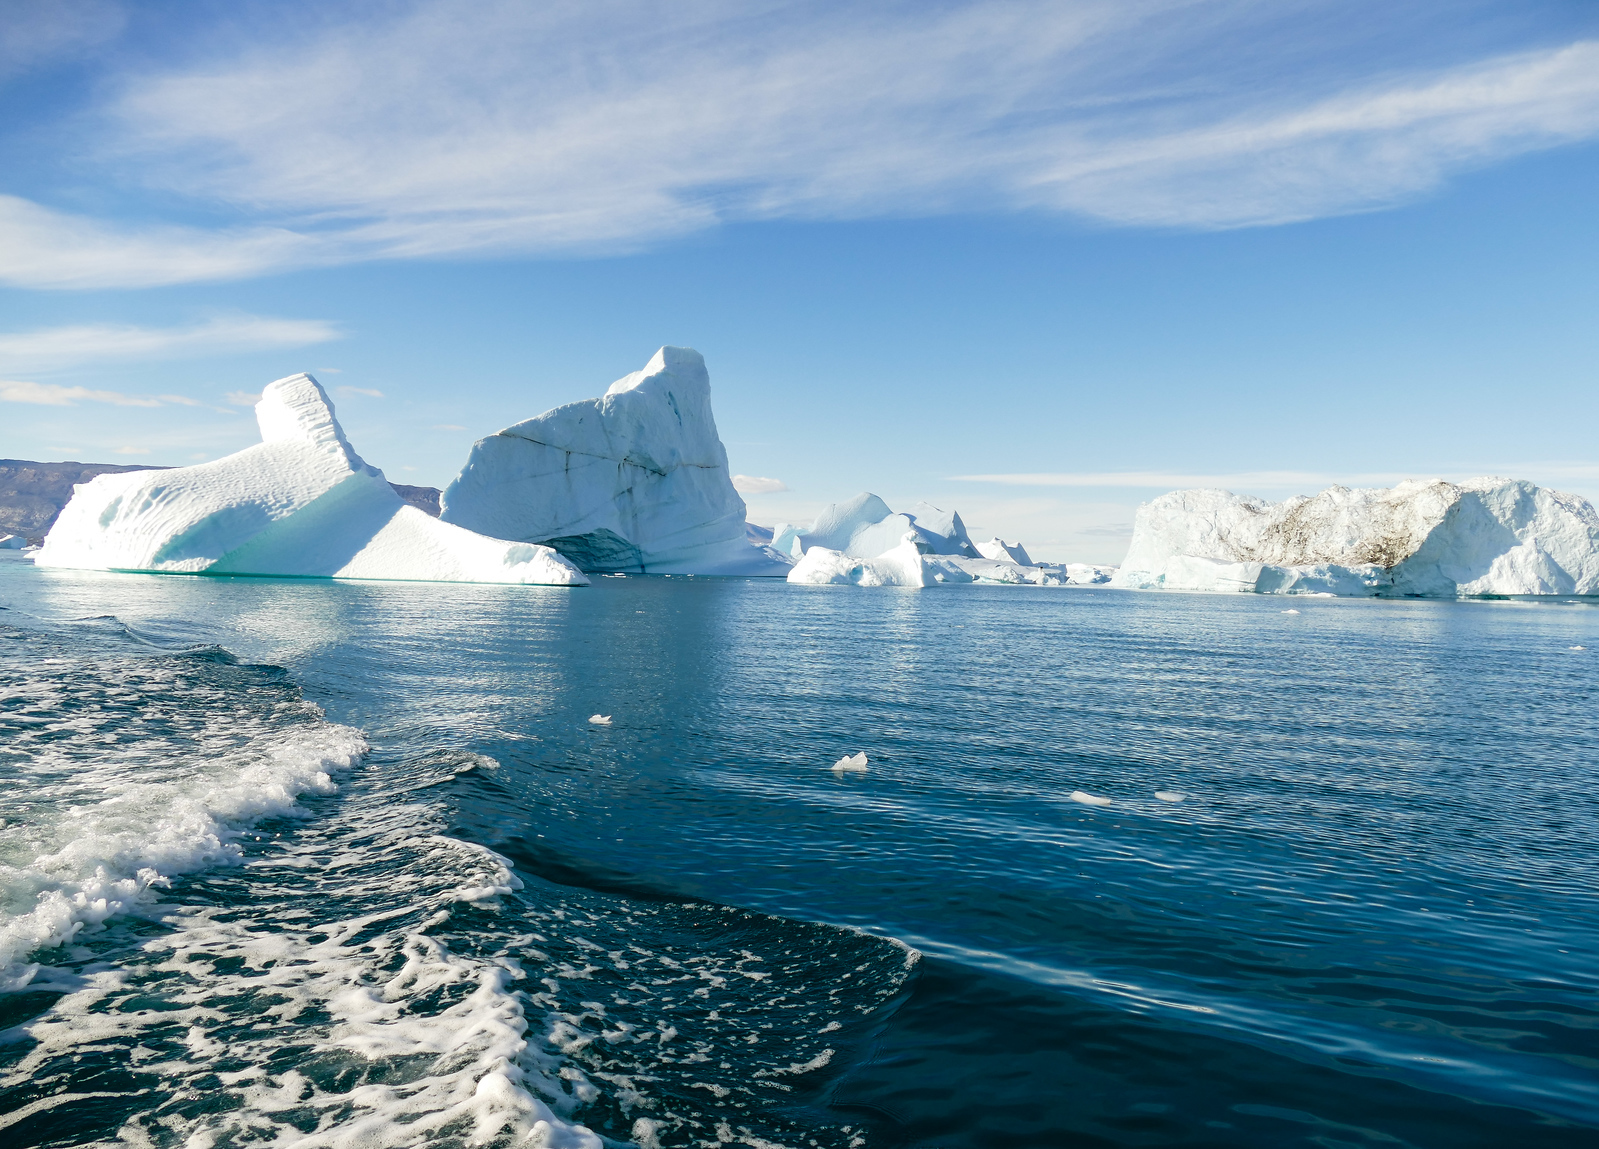 Icebergs scattered around a blue bay at Red Island in Greenland